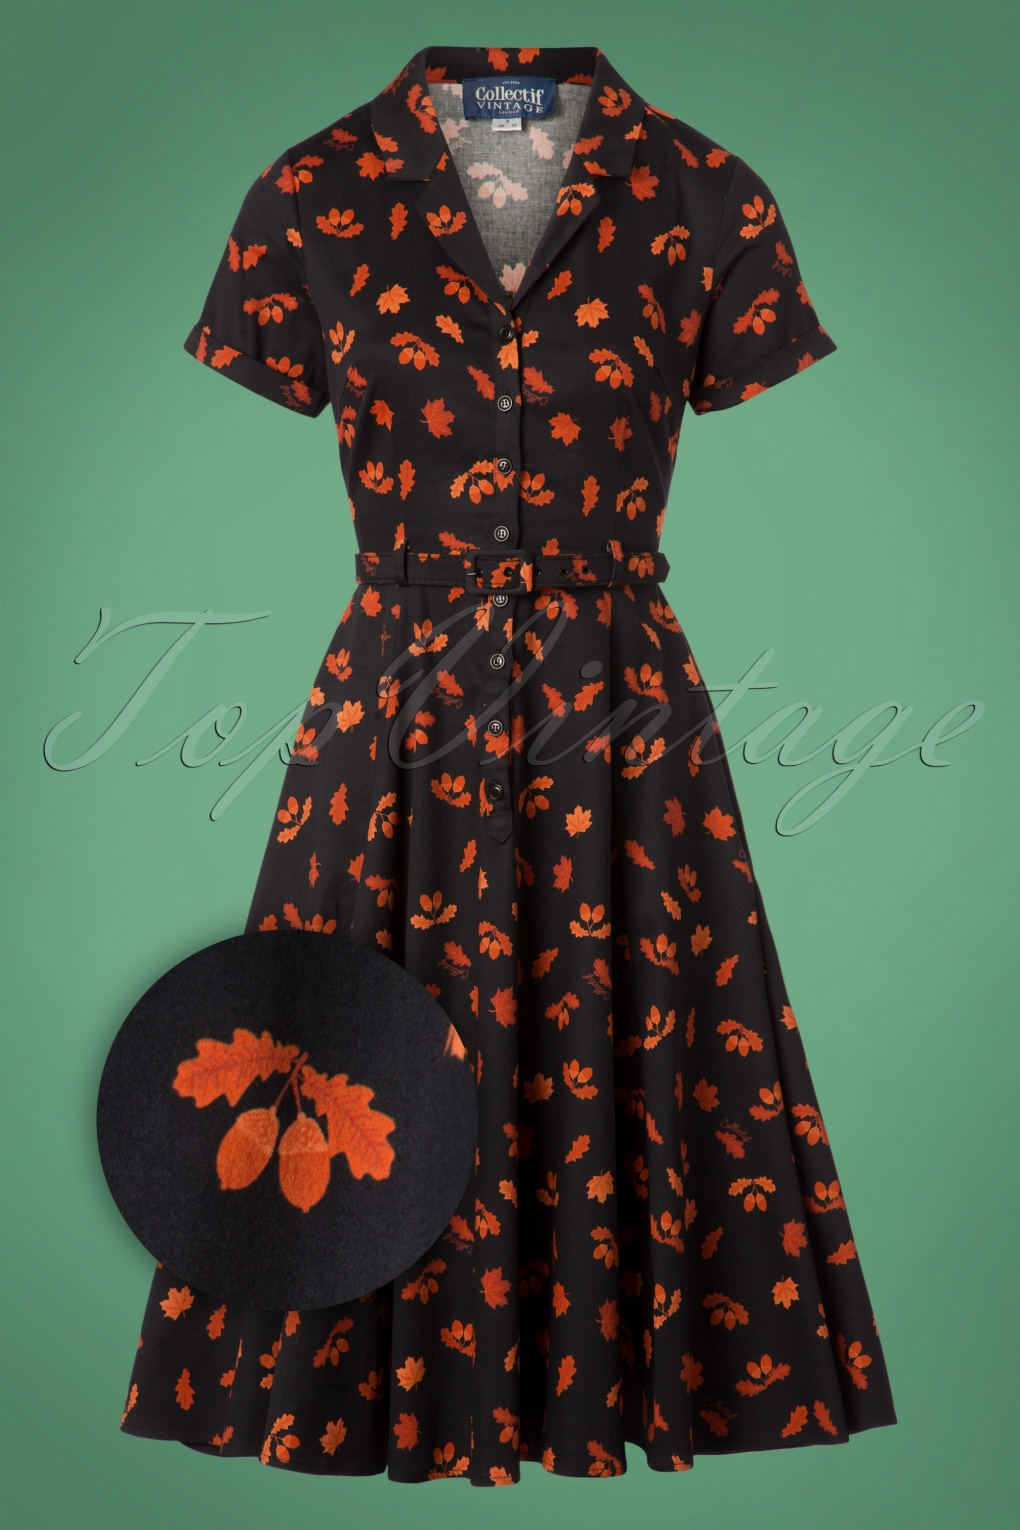 50 Vintage Inspired Clothing Stores 50s Caterina Acorn Swing Dress in Black £73.57 AT vintagedancer.com